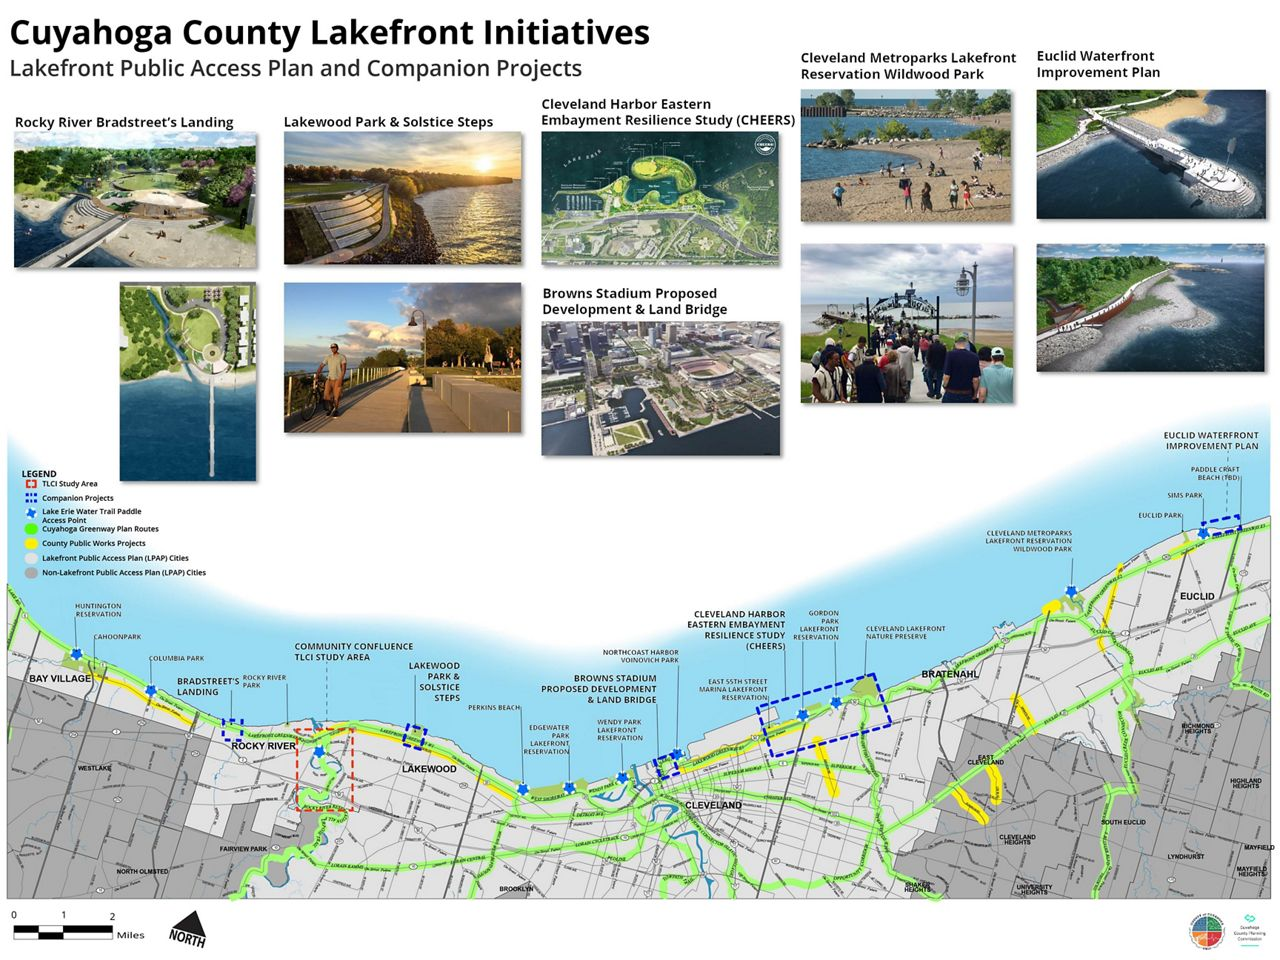 Image provided by Cuyahoga County planners show ideas for public access to the lakefront.